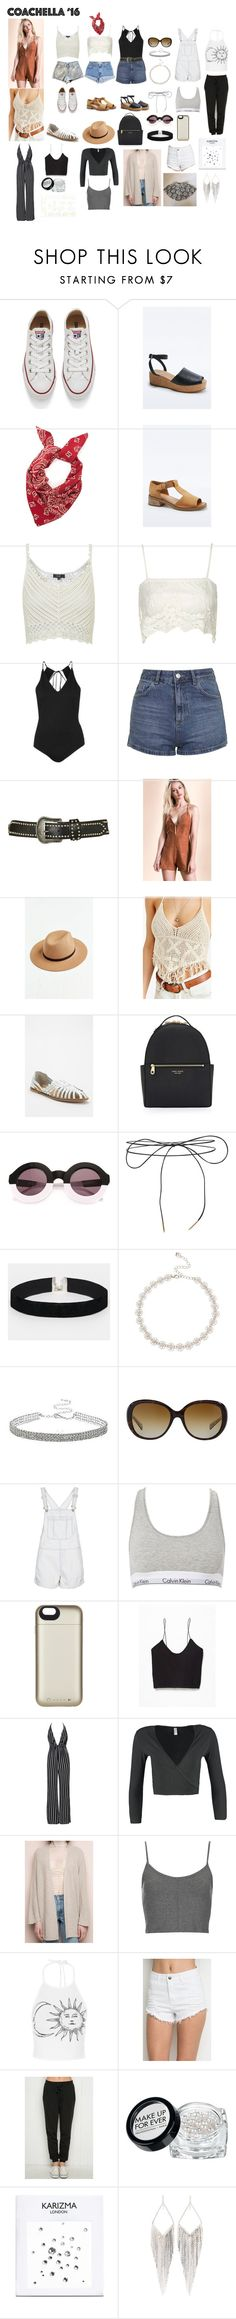 """""""Ariana Inspired Outfits/Clothing/Accessories for Coachella"""" by aglookbook ❤ liked on Polyvore featuring Converse, Topshop, Carmar, Levi's, Staring At Stars, Ecote, Henri Bendel, Wildfox, Lilou and ASOS"""